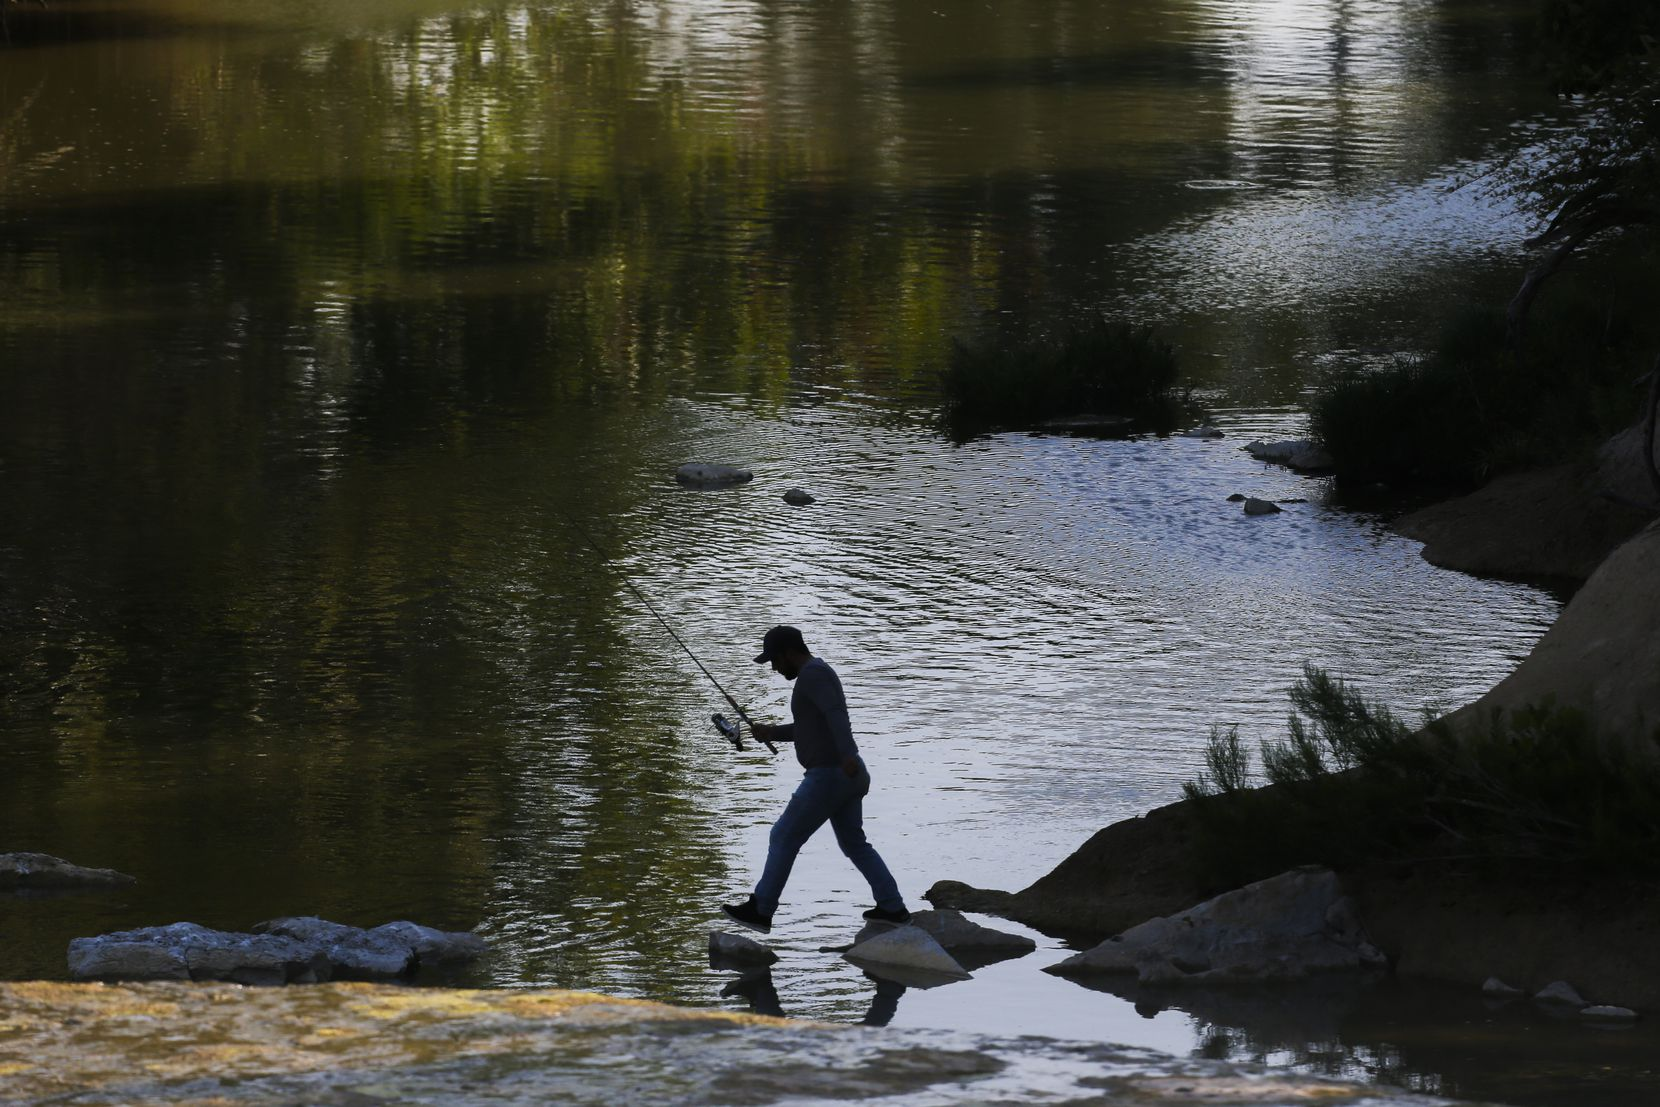 A fisherman hops from rock to rock down creek from where officials surveyed the spillway at White Rock Lake on July 25, 2019, in Dallas.